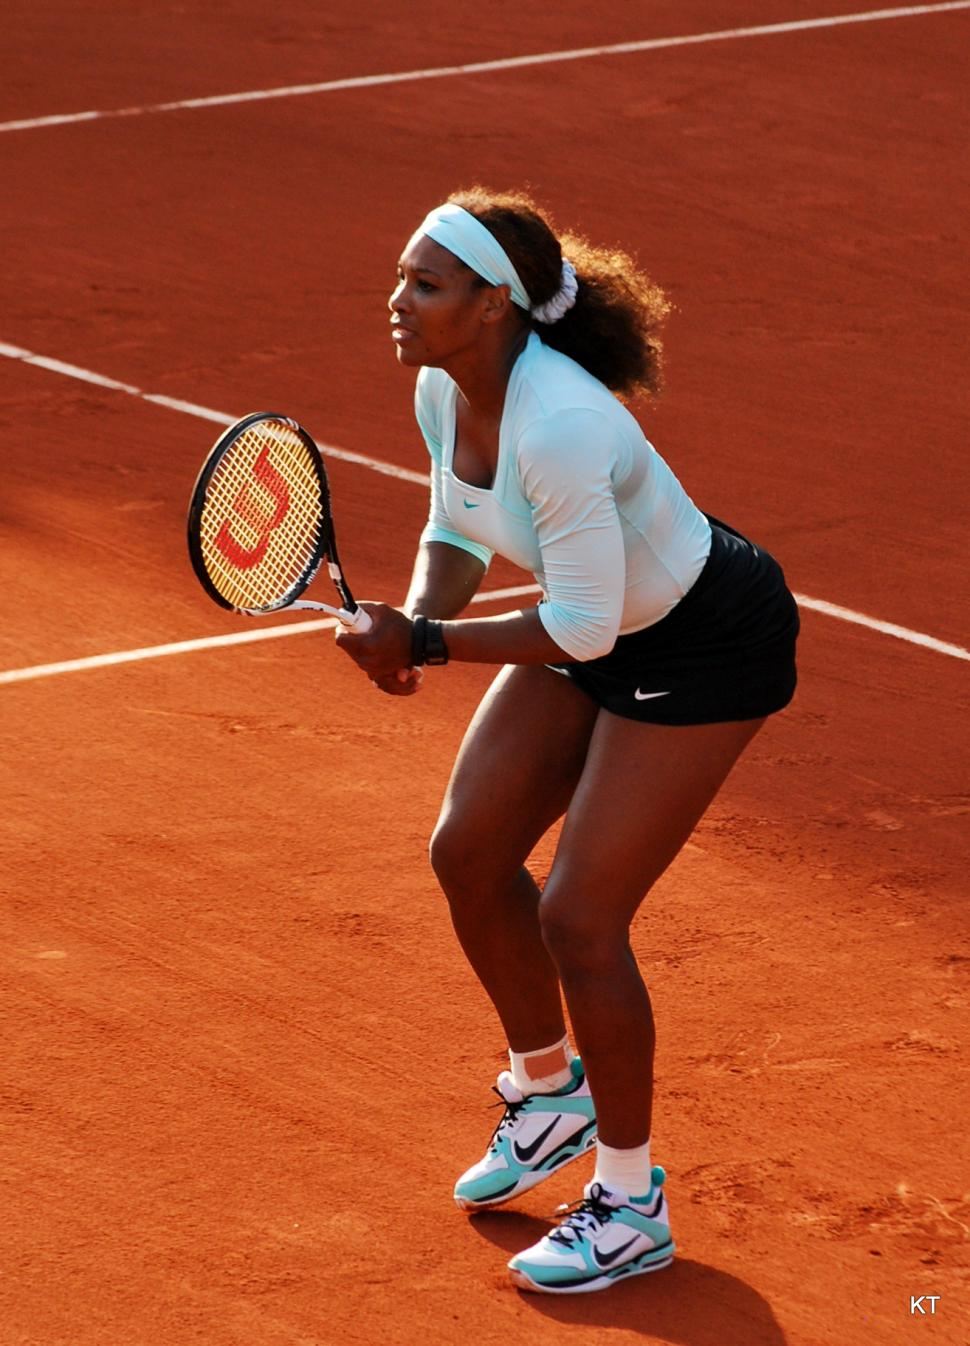 Serena Williams (picture Carin 06, Flickr - Creative Commons cc-by-sa-2.0)